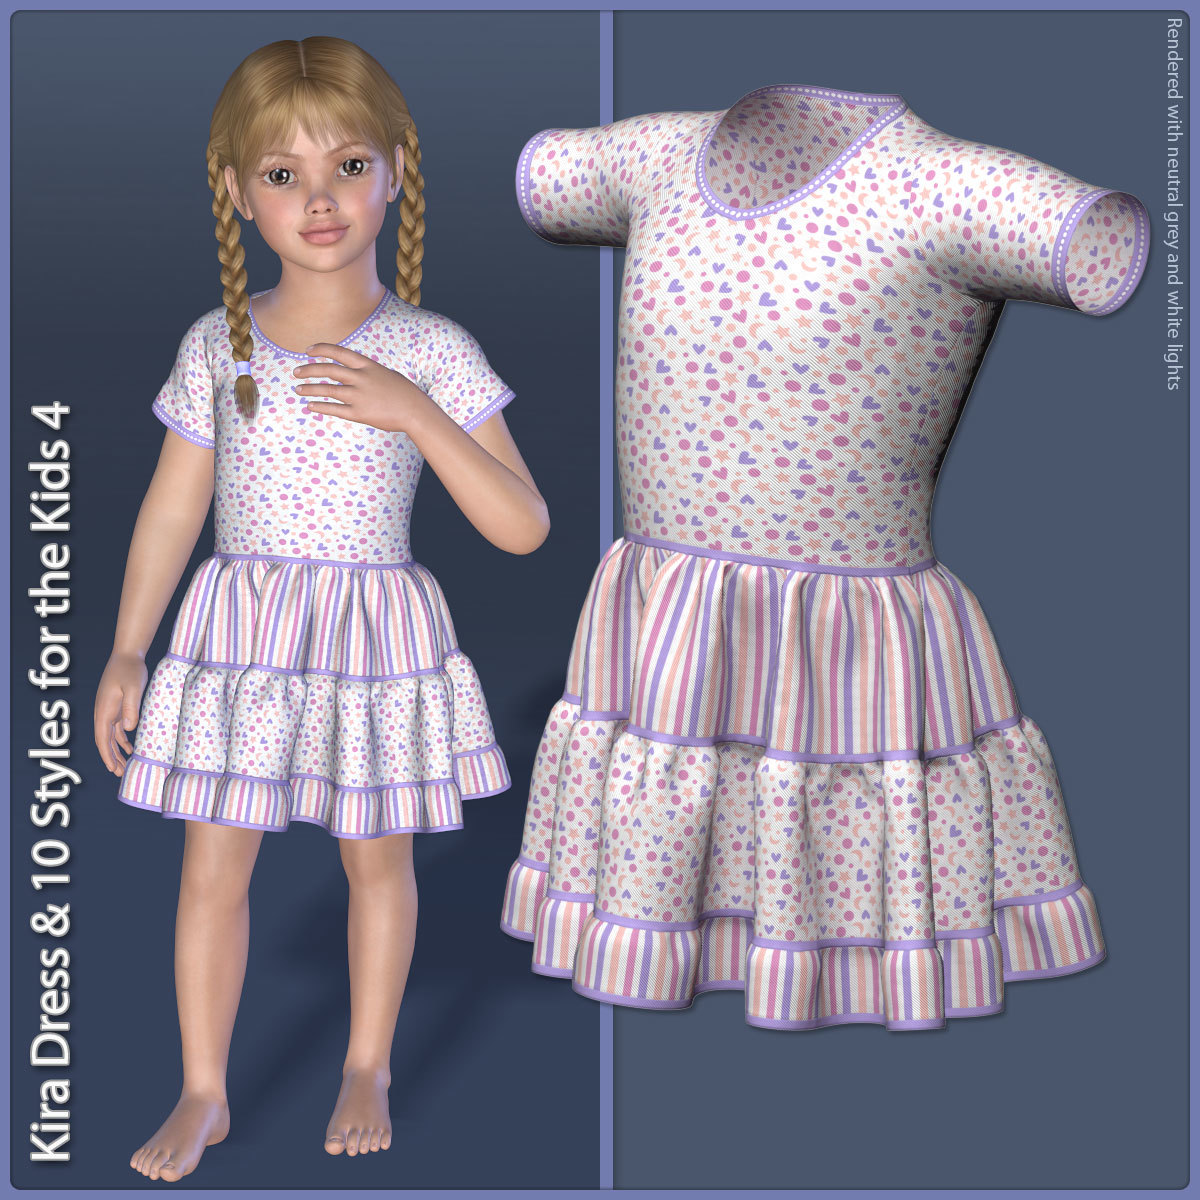 Kira Dress and 10 Styles for the Kids 4